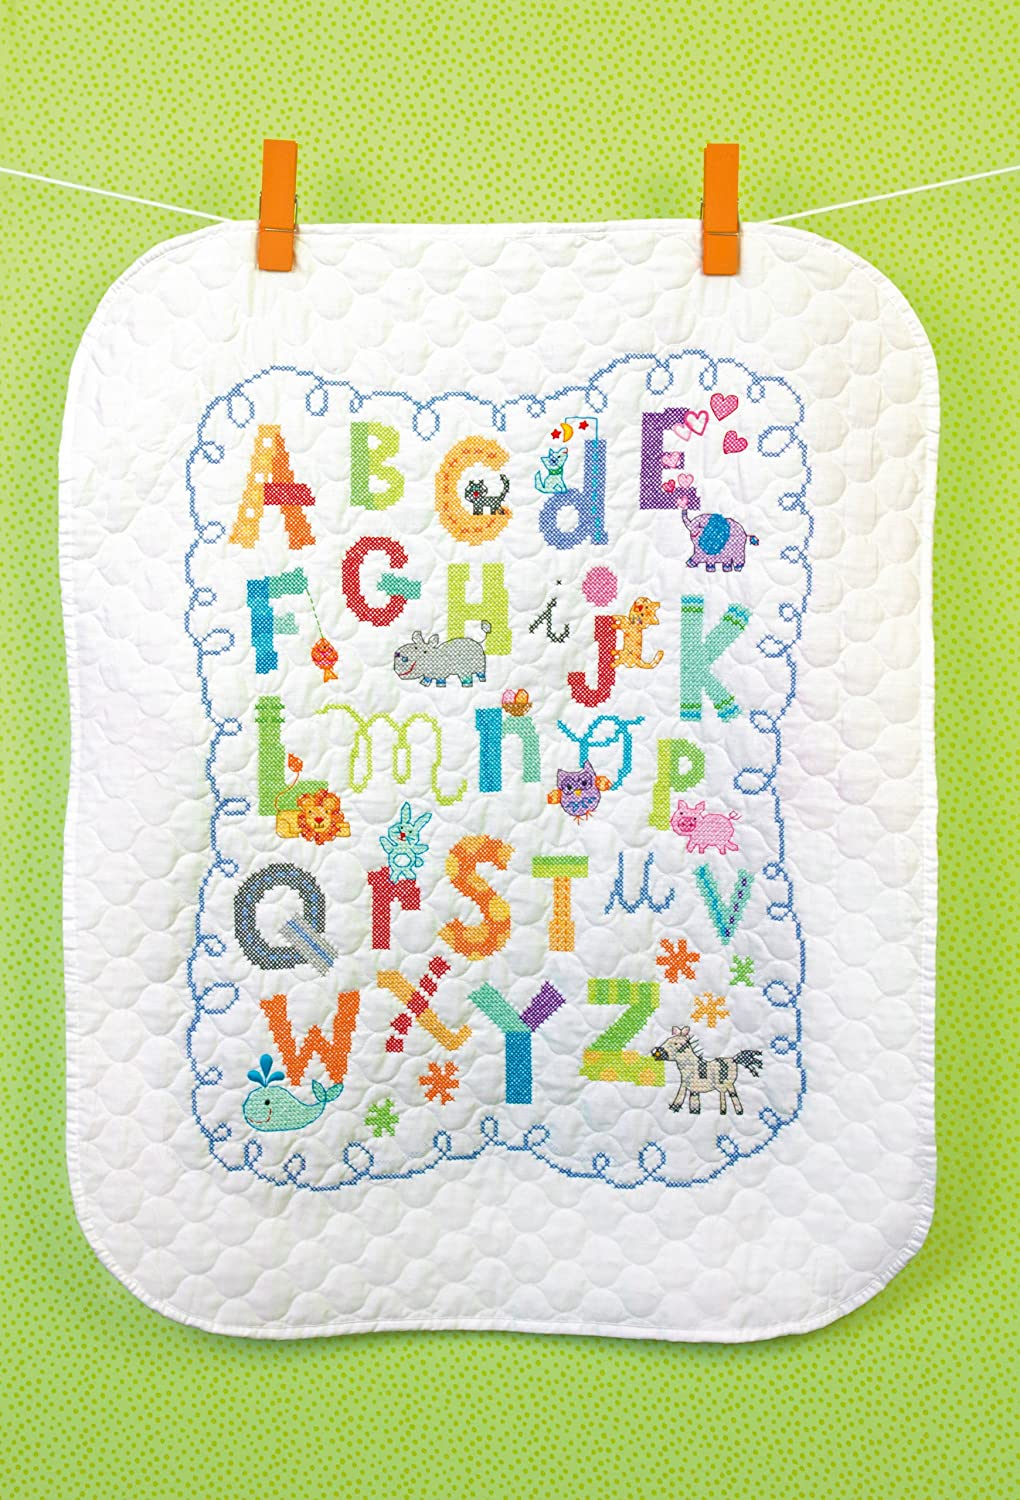 Amazon.com: Dimensions Needlecrafts Stamped Cross Stitch, Alphabet ... : alphabet baby quilt pattern - Adamdwight.com